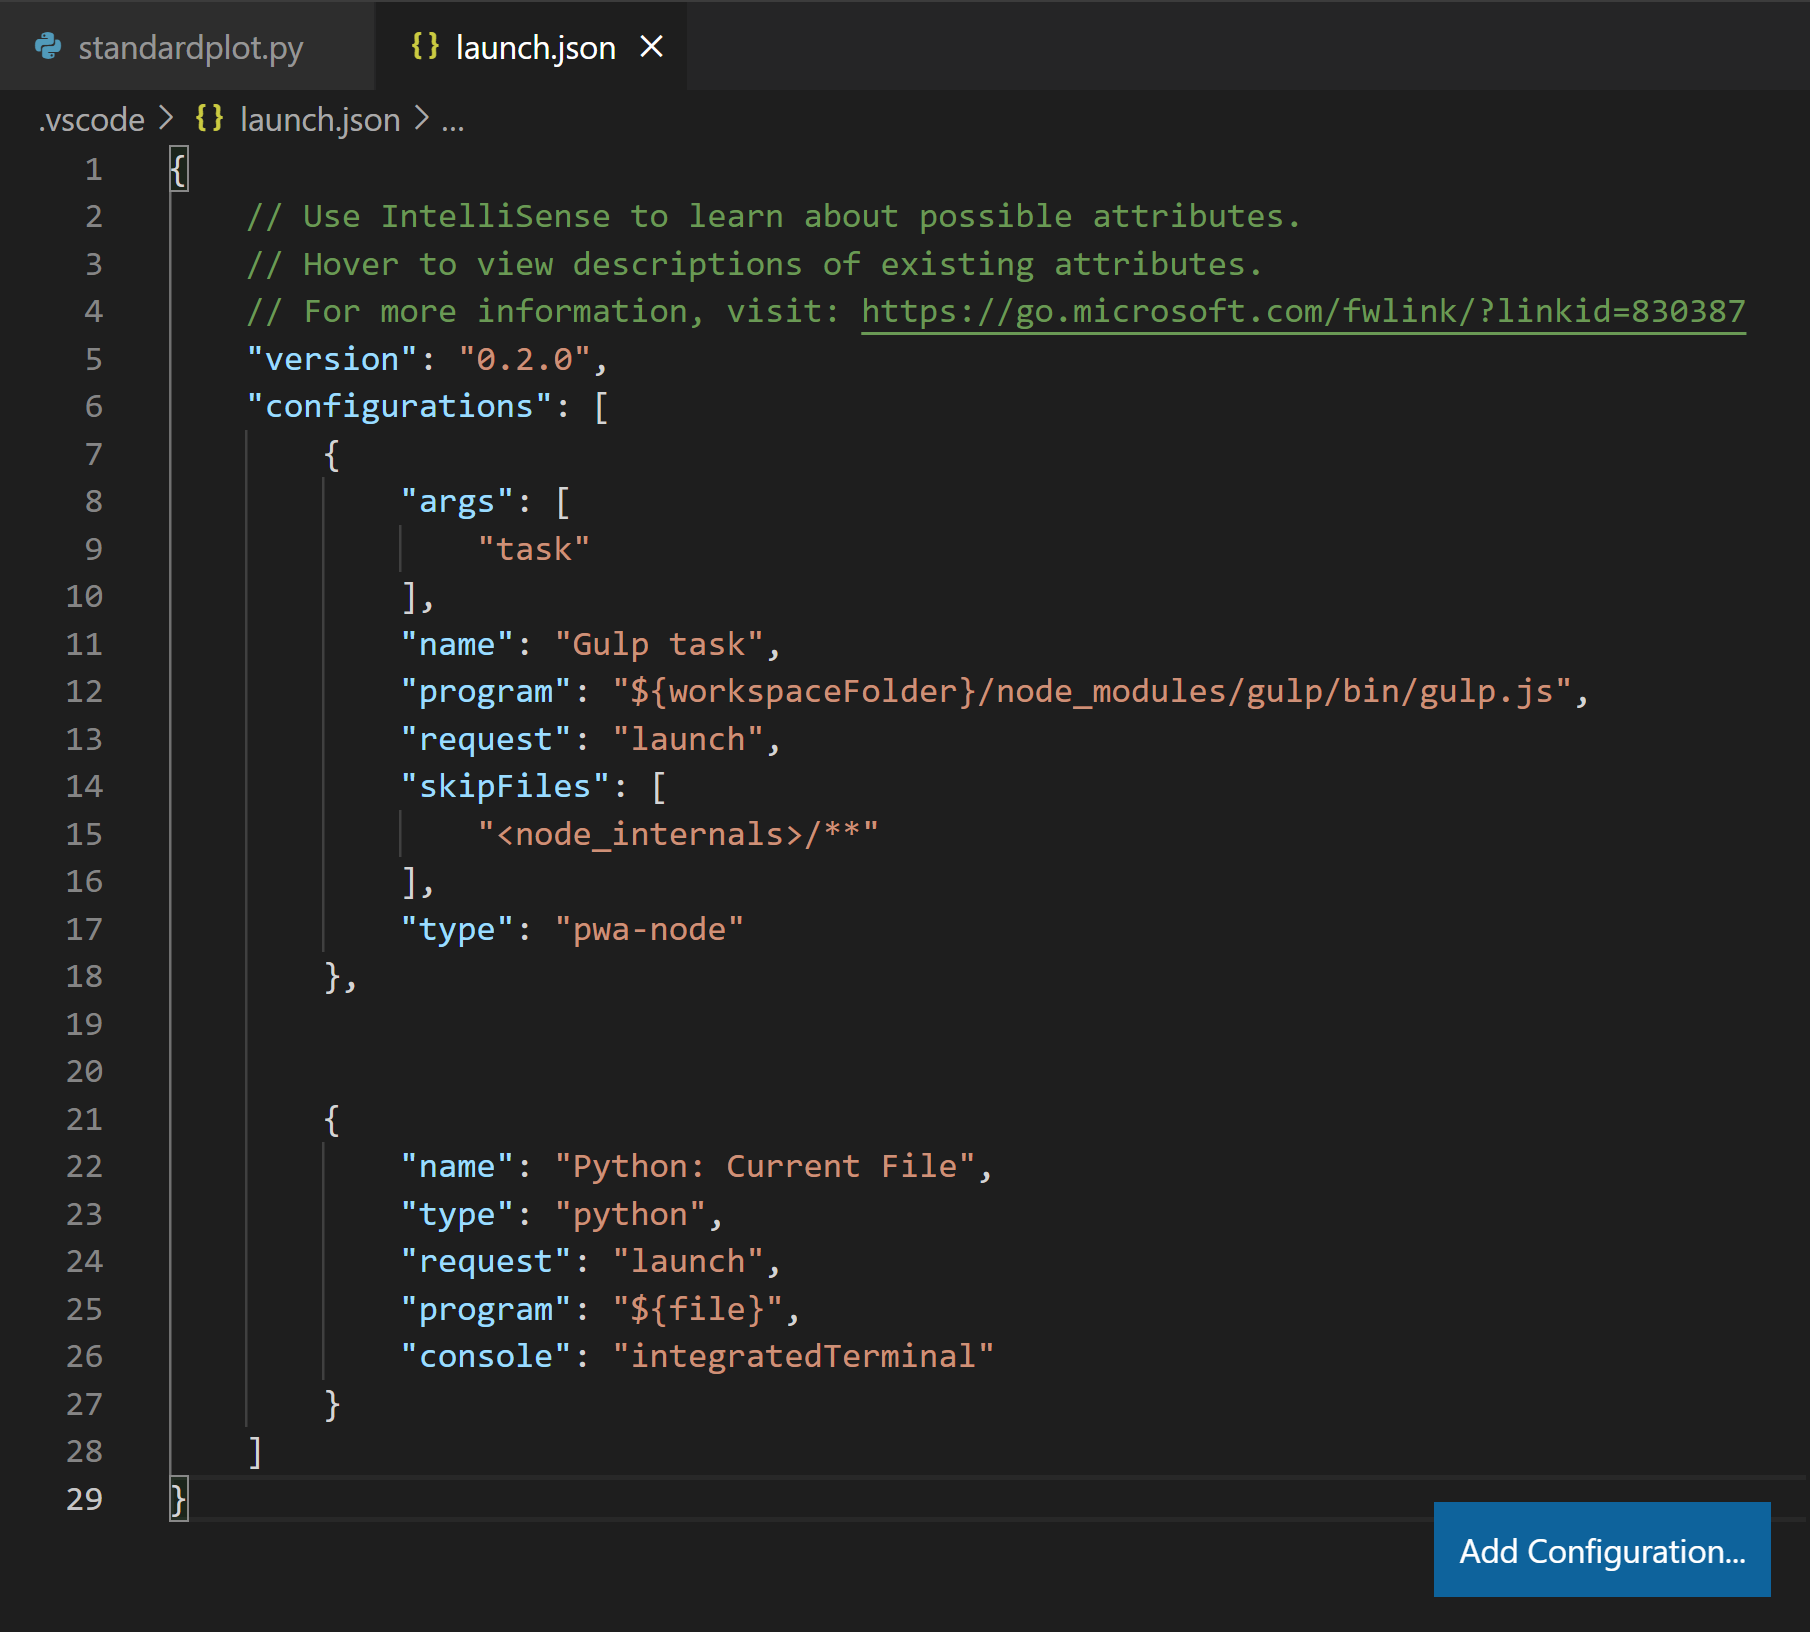 Debugging configurations for Python apps in Visual Studio Code